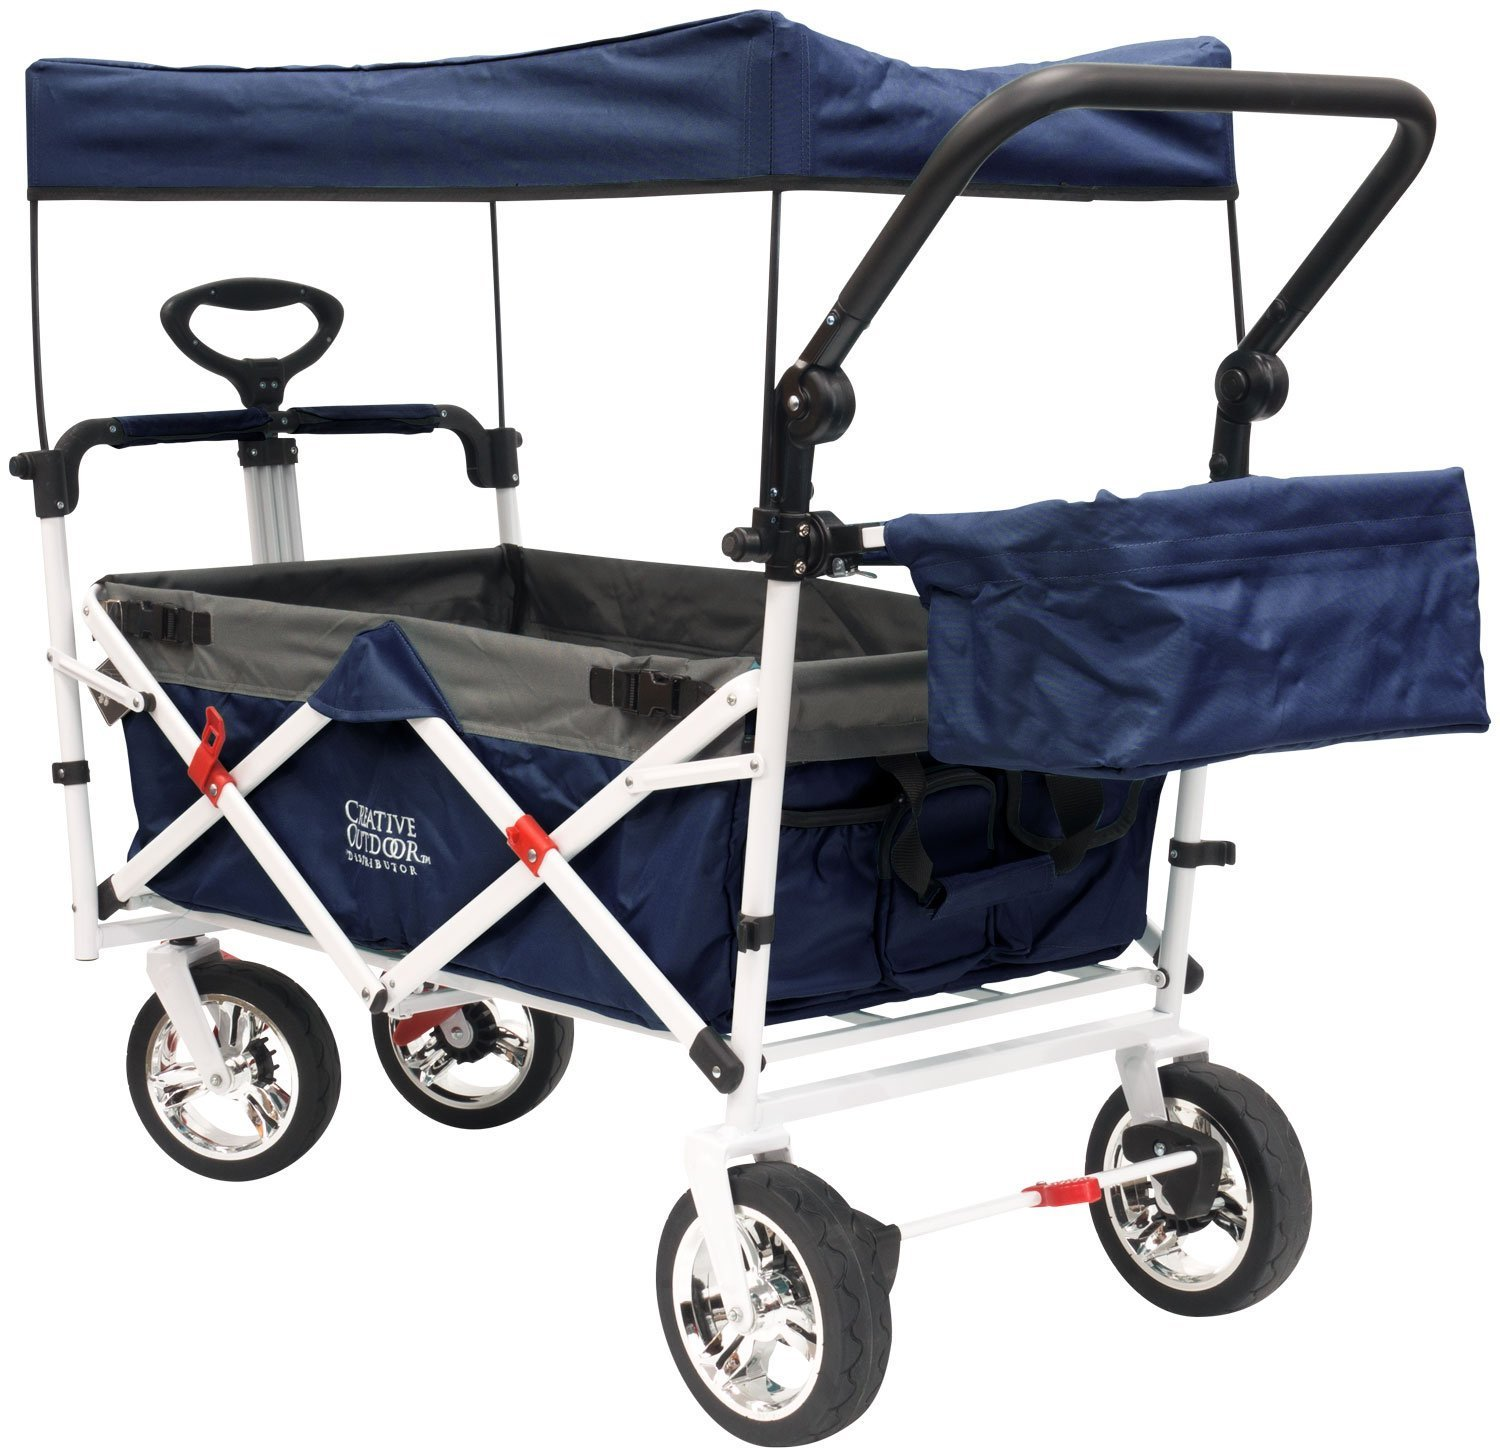 Creative Outdoor Distributor Push Pull Wagon Foldable Sun/Rain Shade (Navy) Creative Outddor Distributor